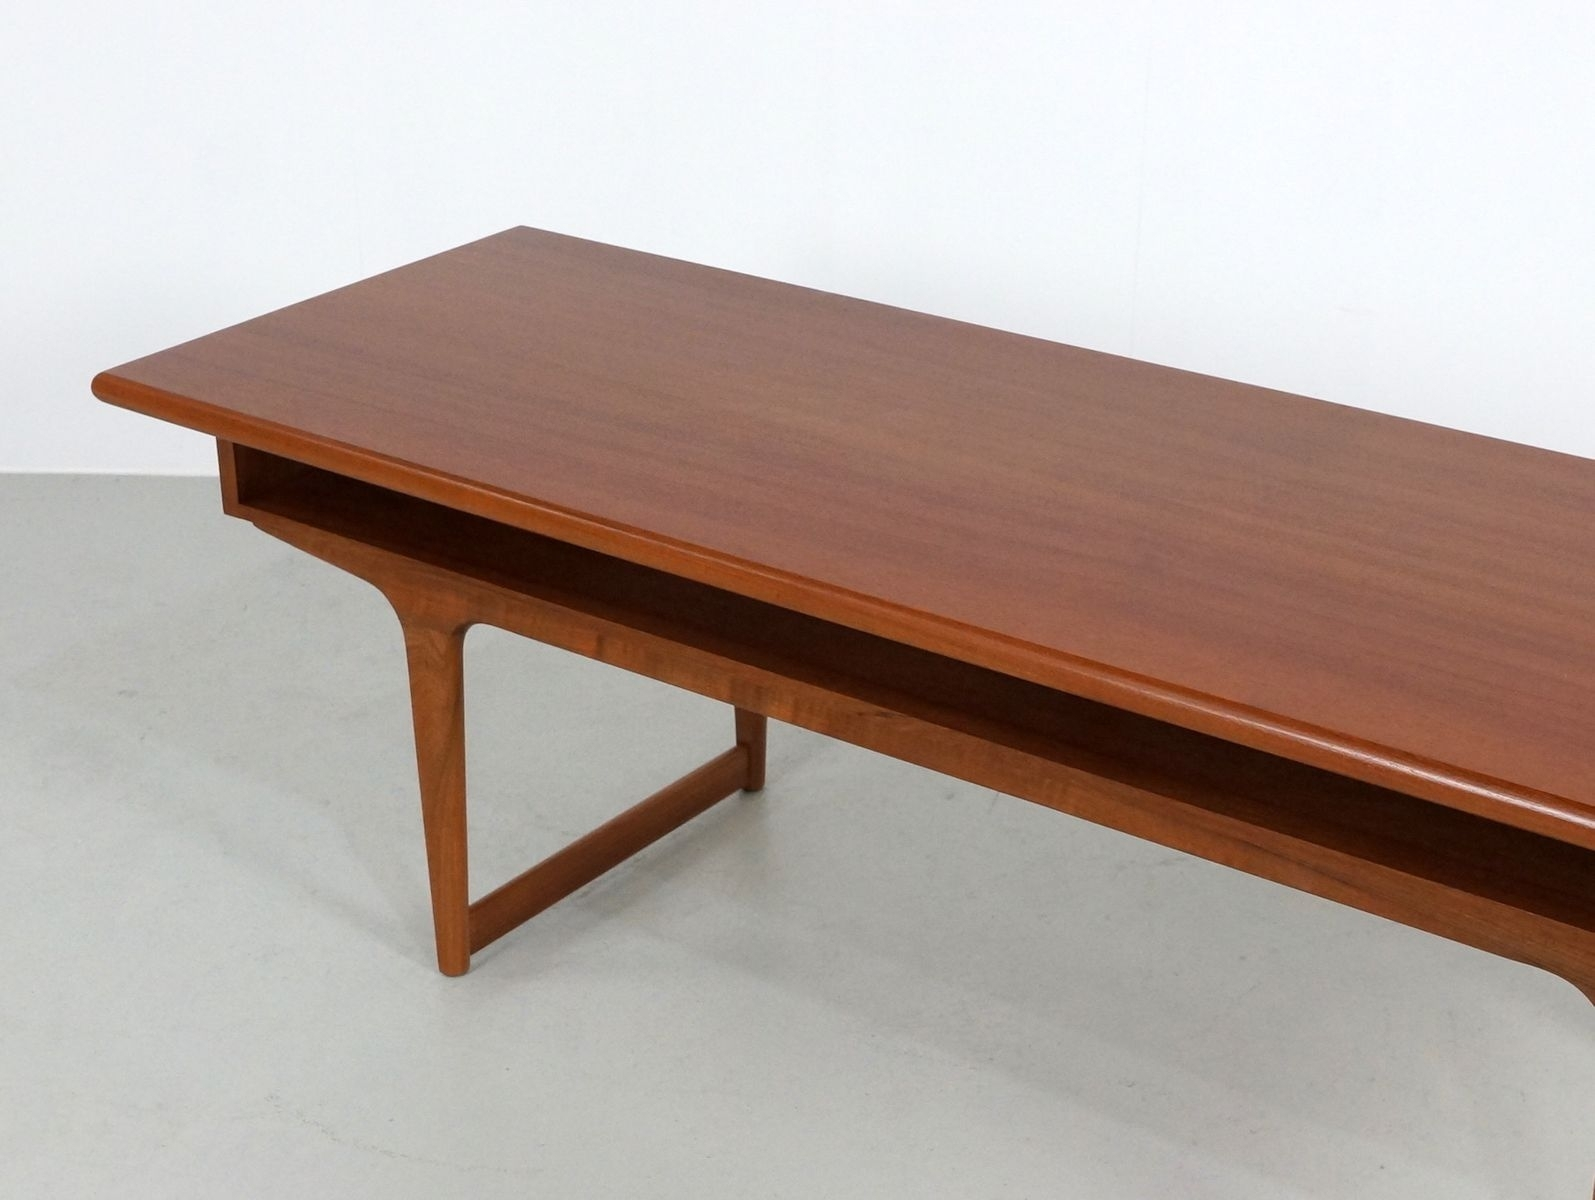 Large Teak Danish Coffee Table, 1960S For Sale At Pamono intended for Large Teak Coffee Tables (Image 17 of 30)